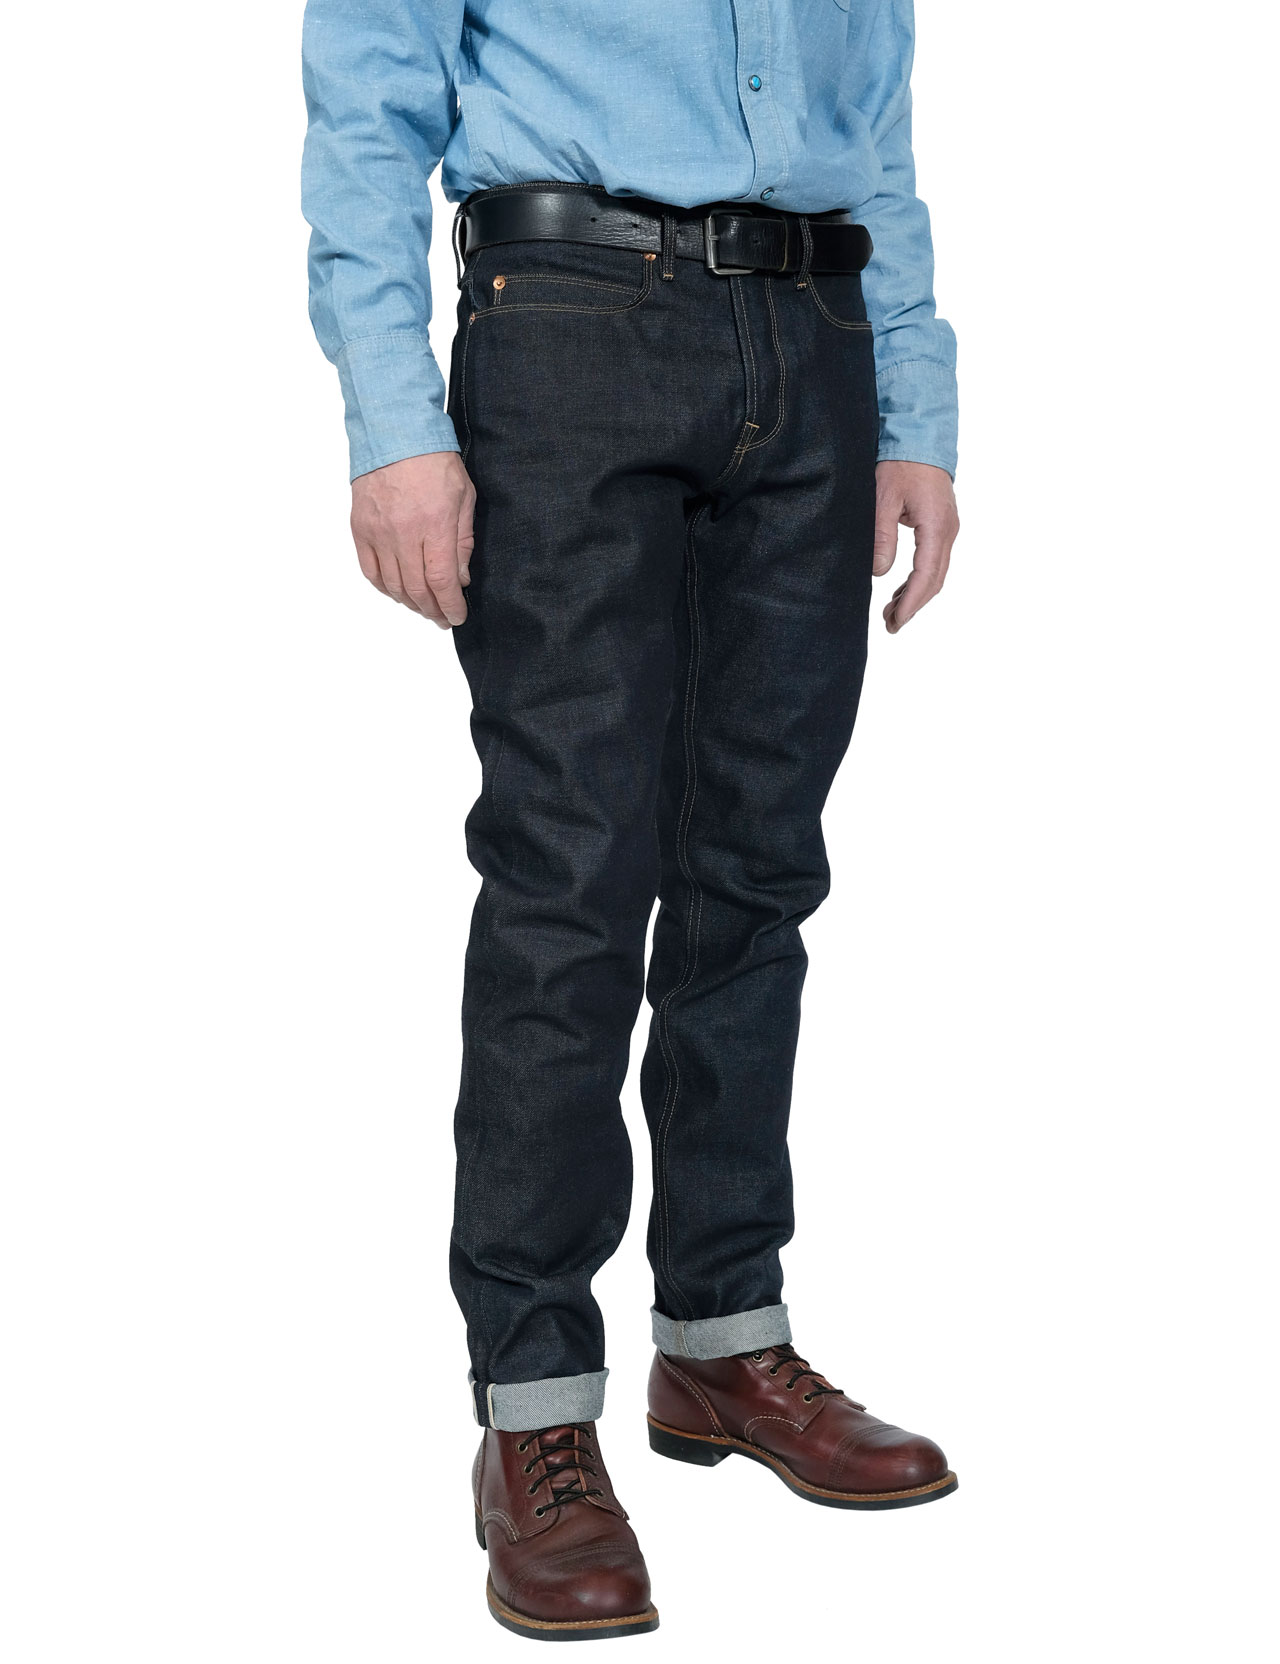 Freenote-Cloth---Portola-Classic-Taper-Denim-Jeans---14.50-oz-1234